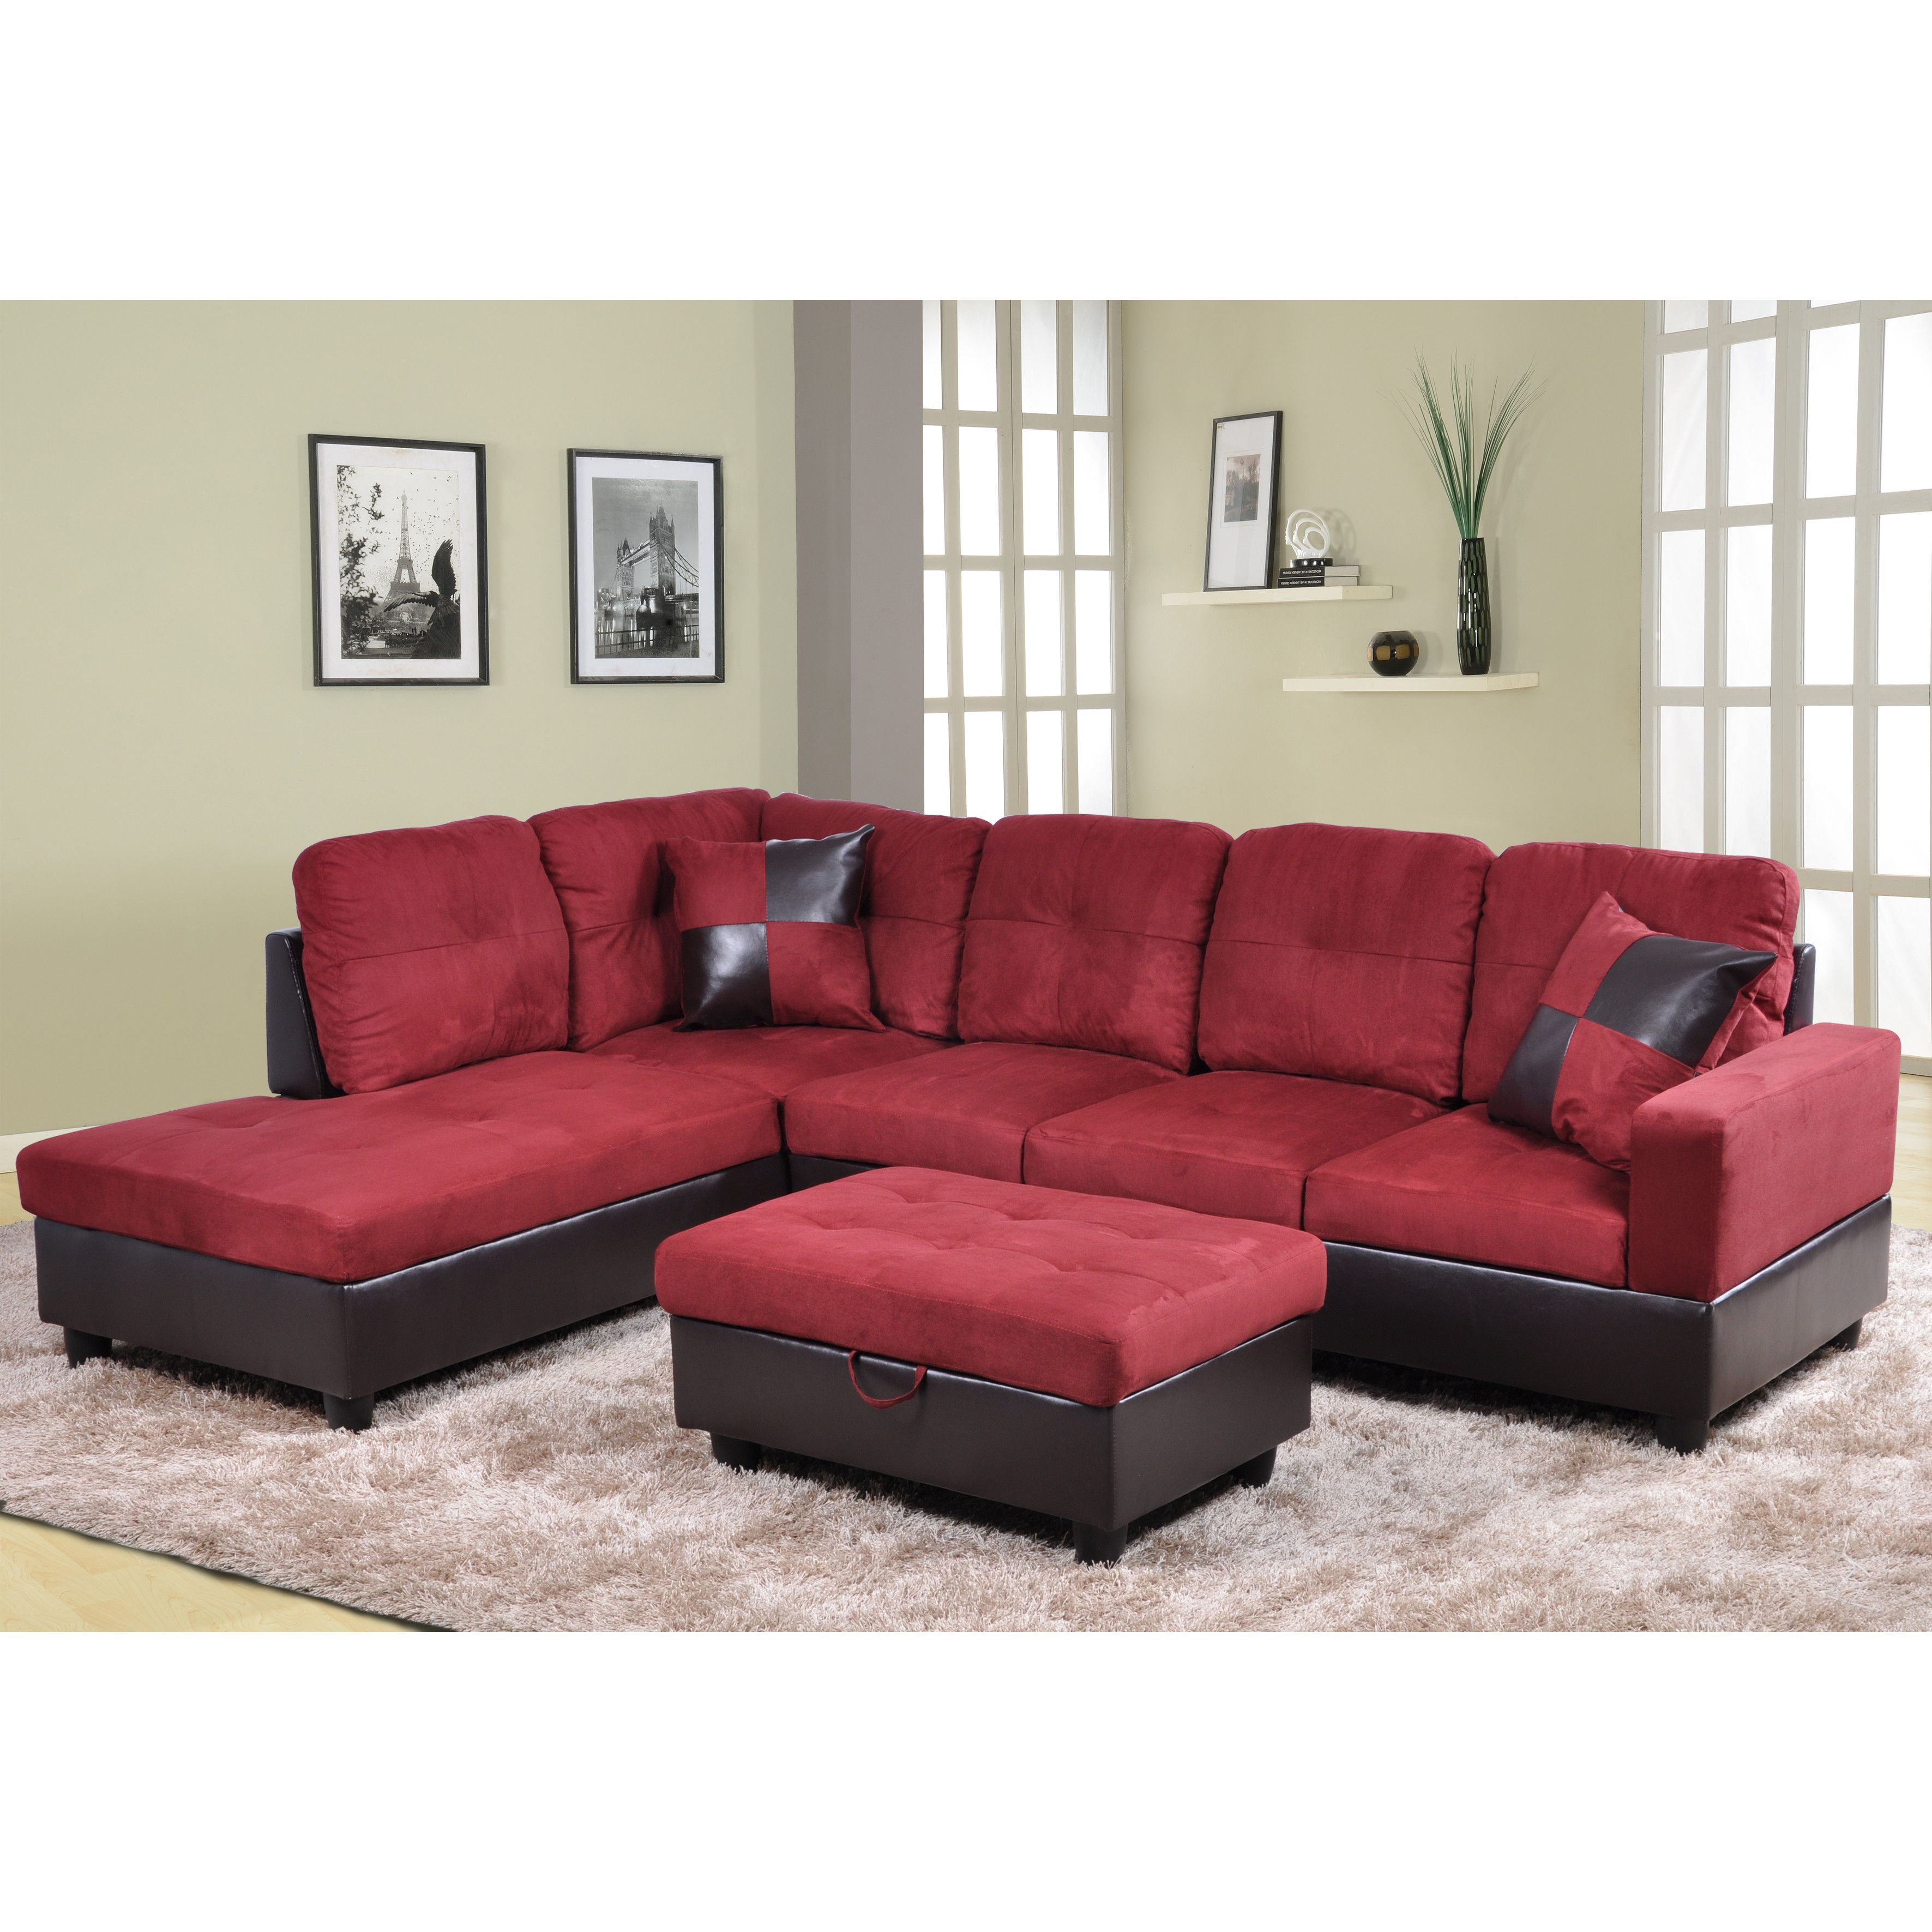 Wayfair For Sectional Sofas To Match Every Style And Budget Enjoy Free Shipping On